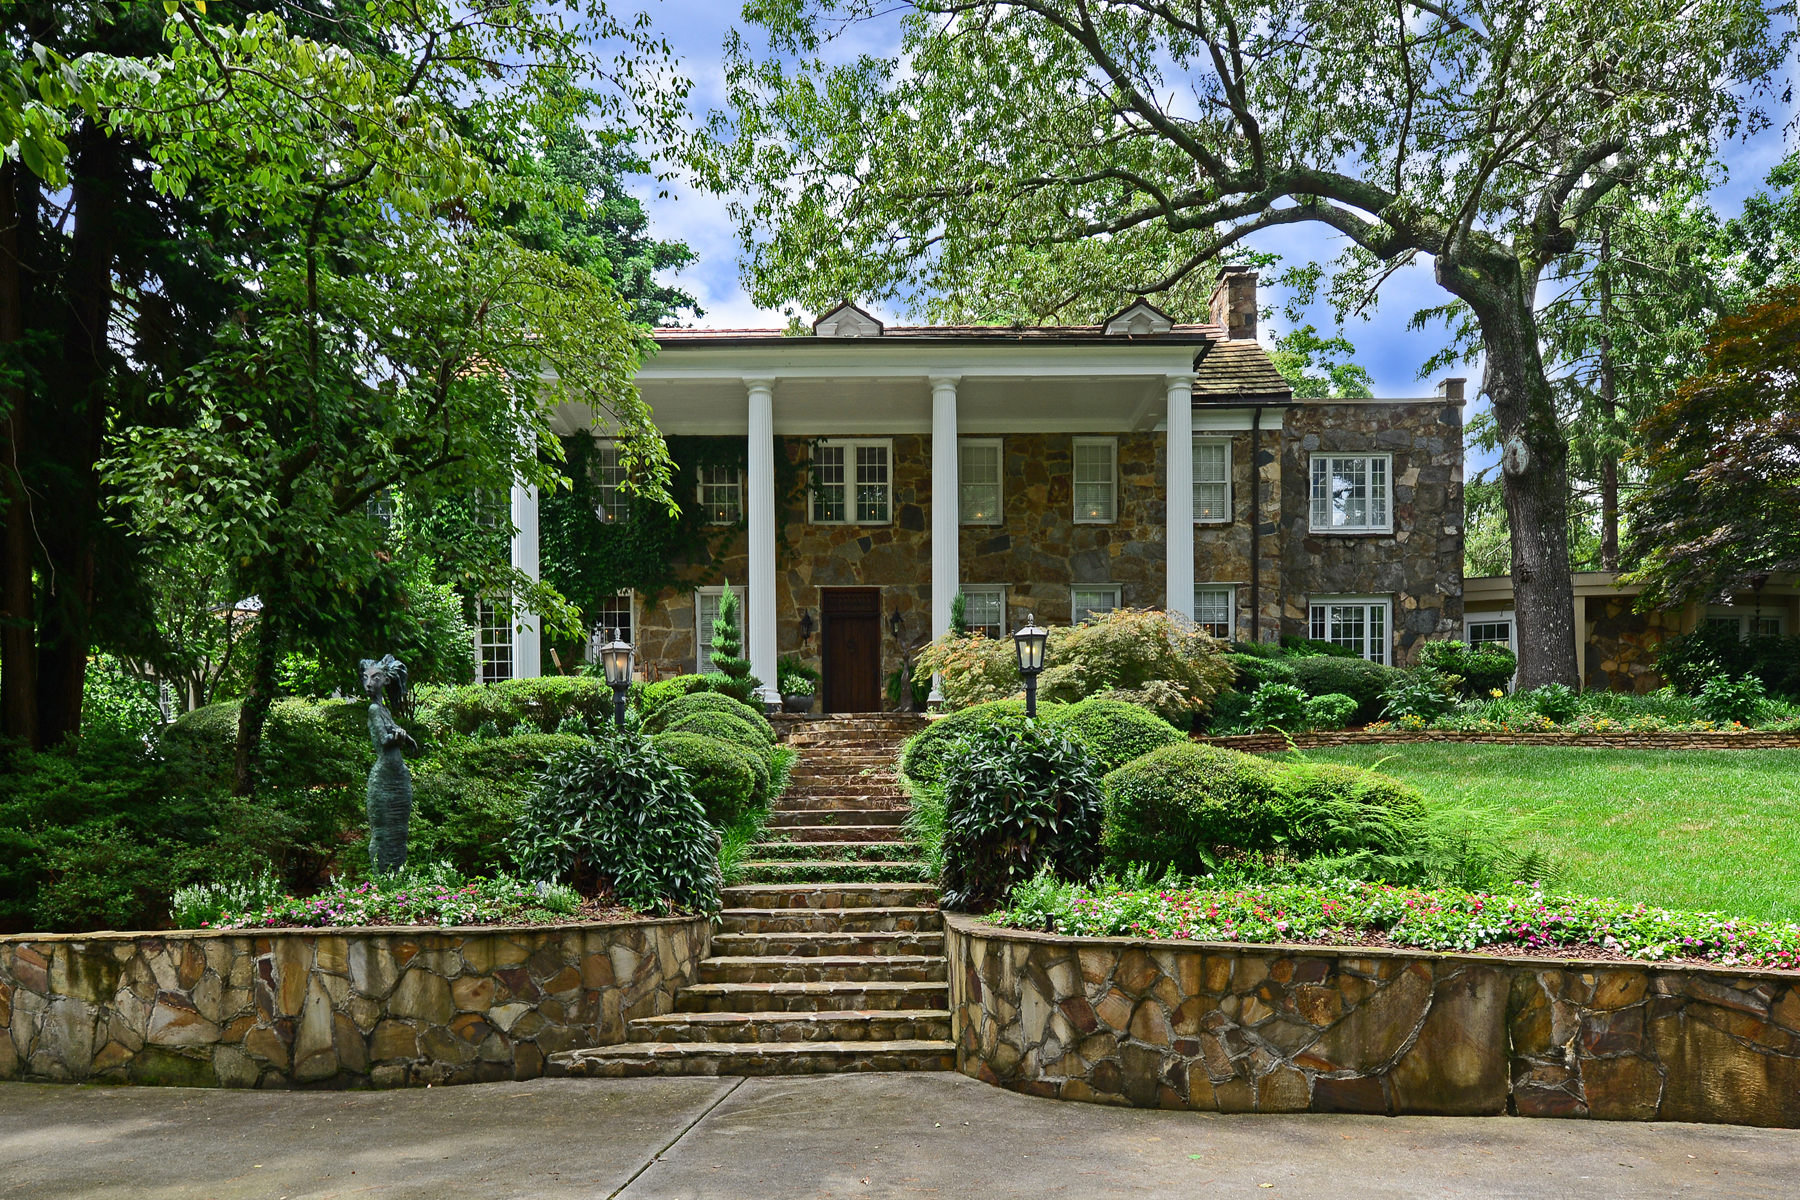 Single Family Home for Active at Custom Restoration, Award Winning Gardens 1295 Heards Ferry Road NW Sandy Springs, Georgia 30328 United States